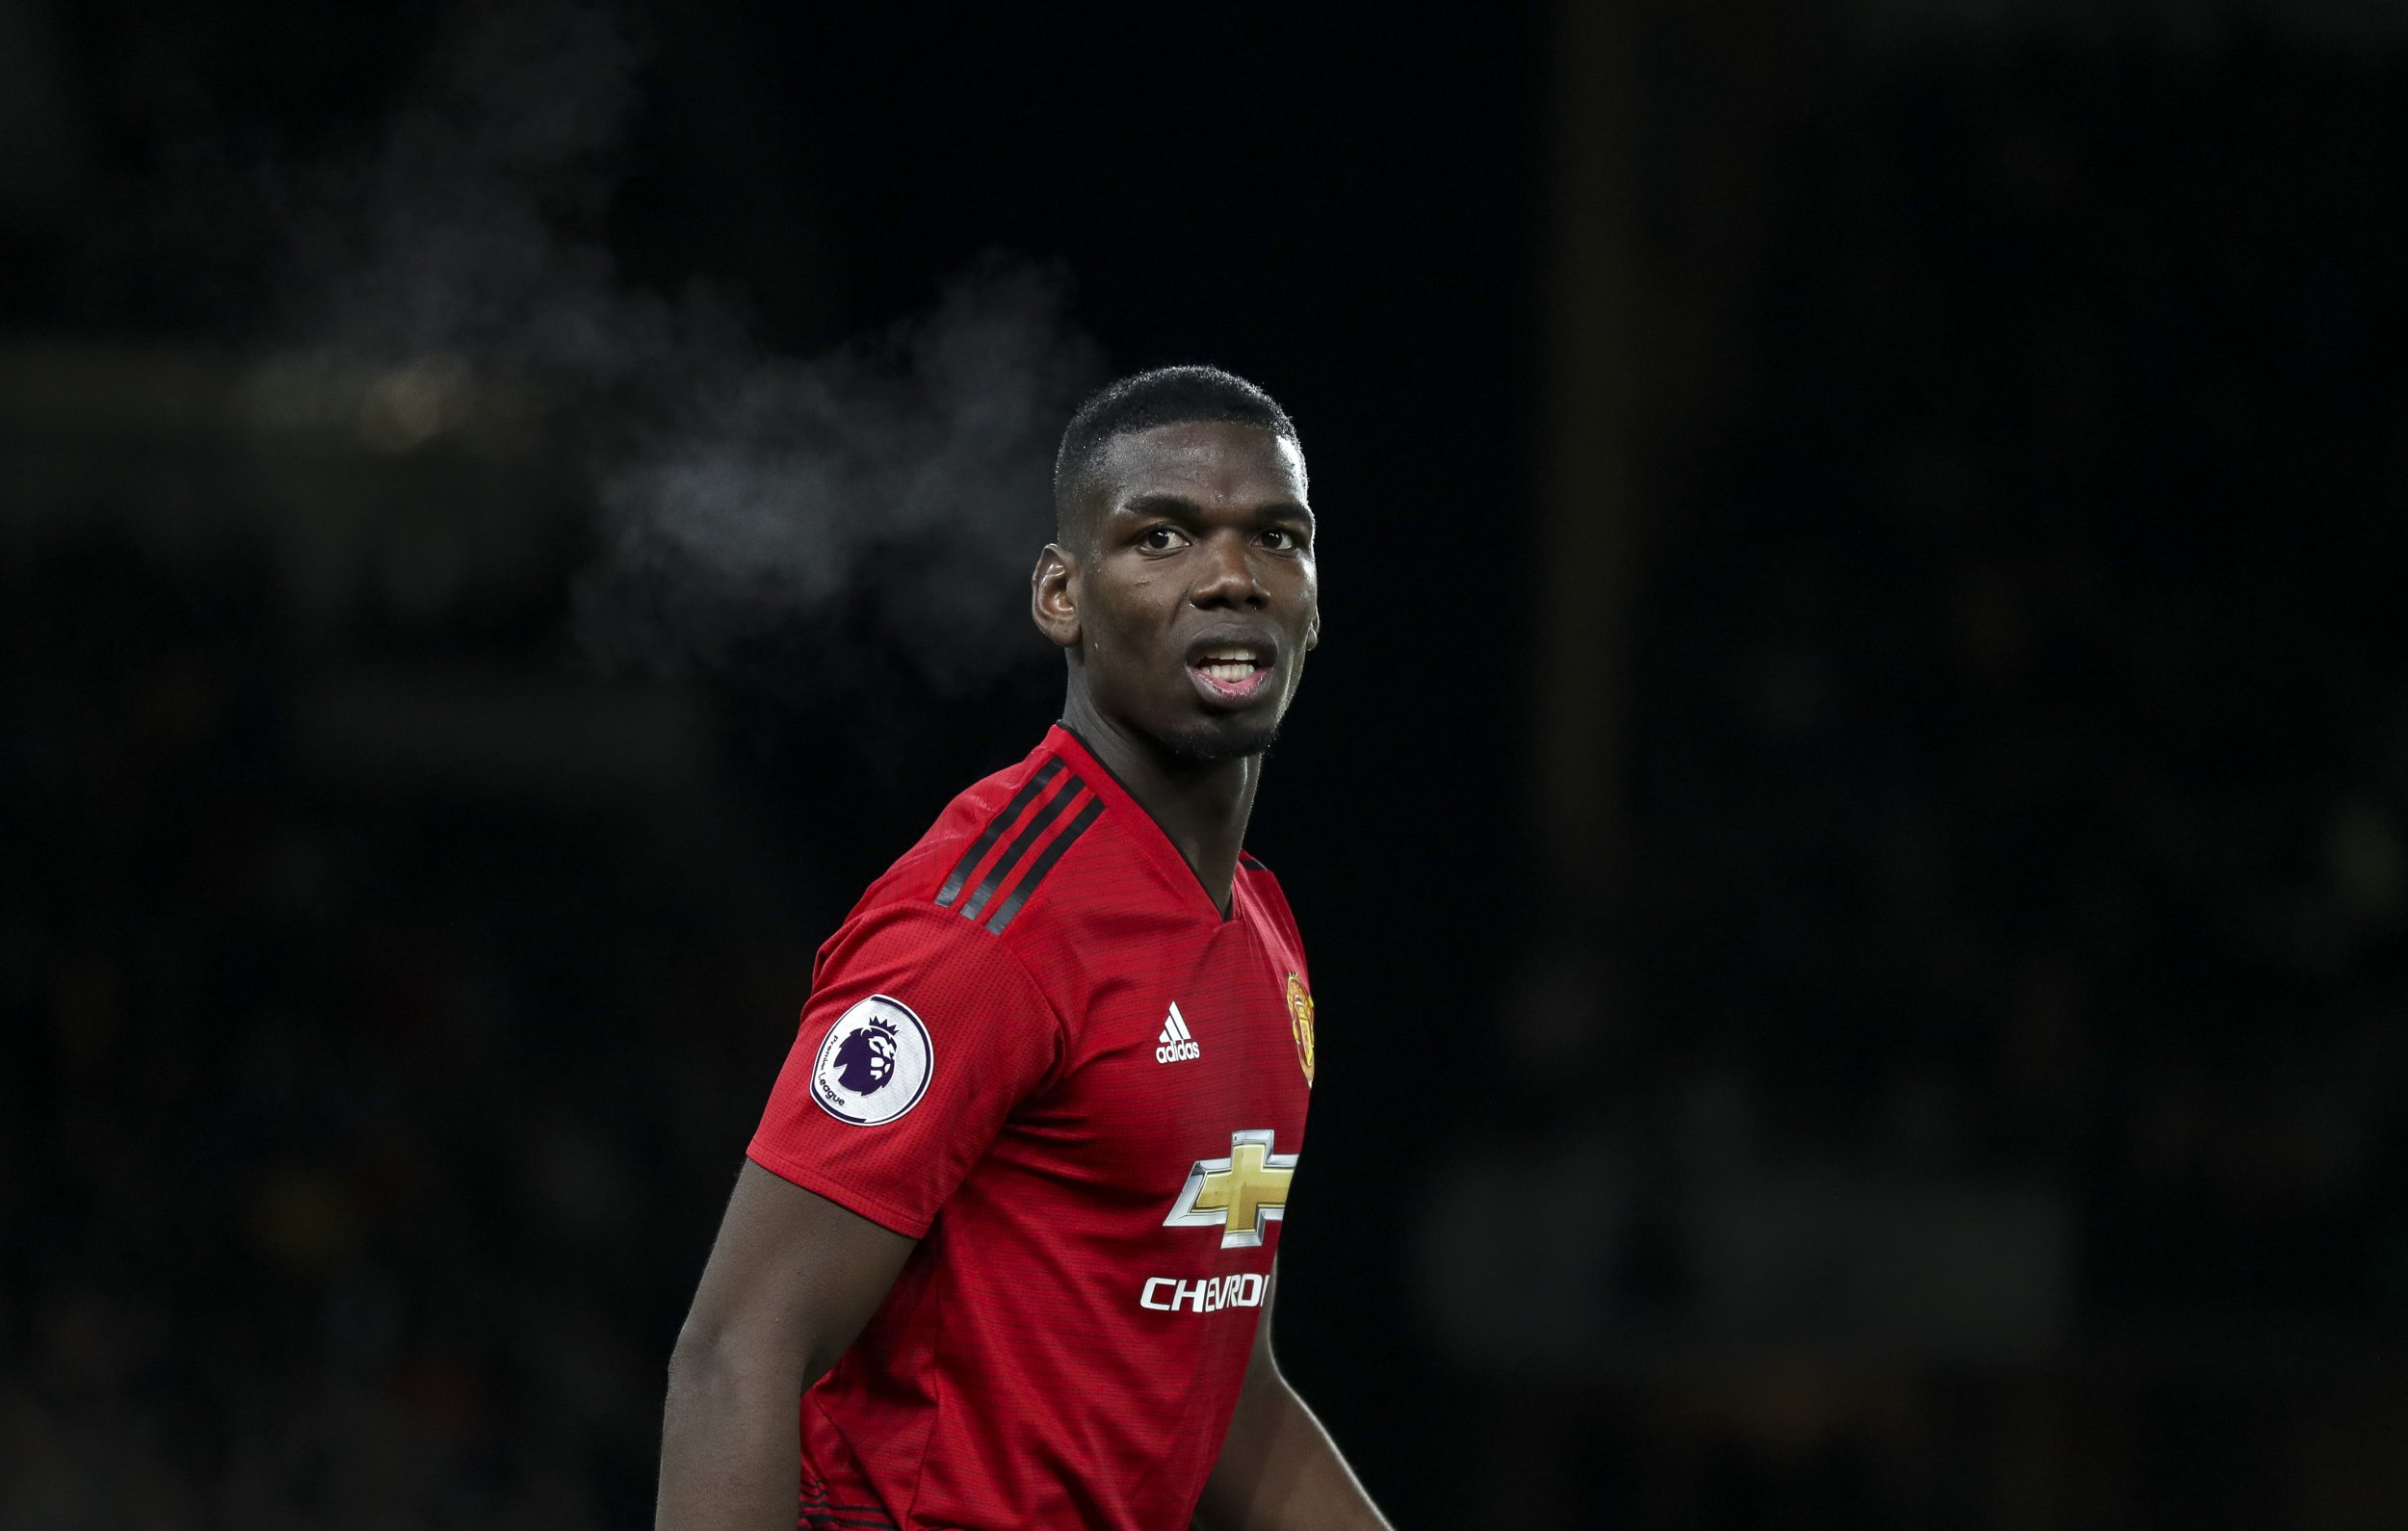 Paul Pogba sends message to Moise Kean after Juventus striker suffers racist abuse